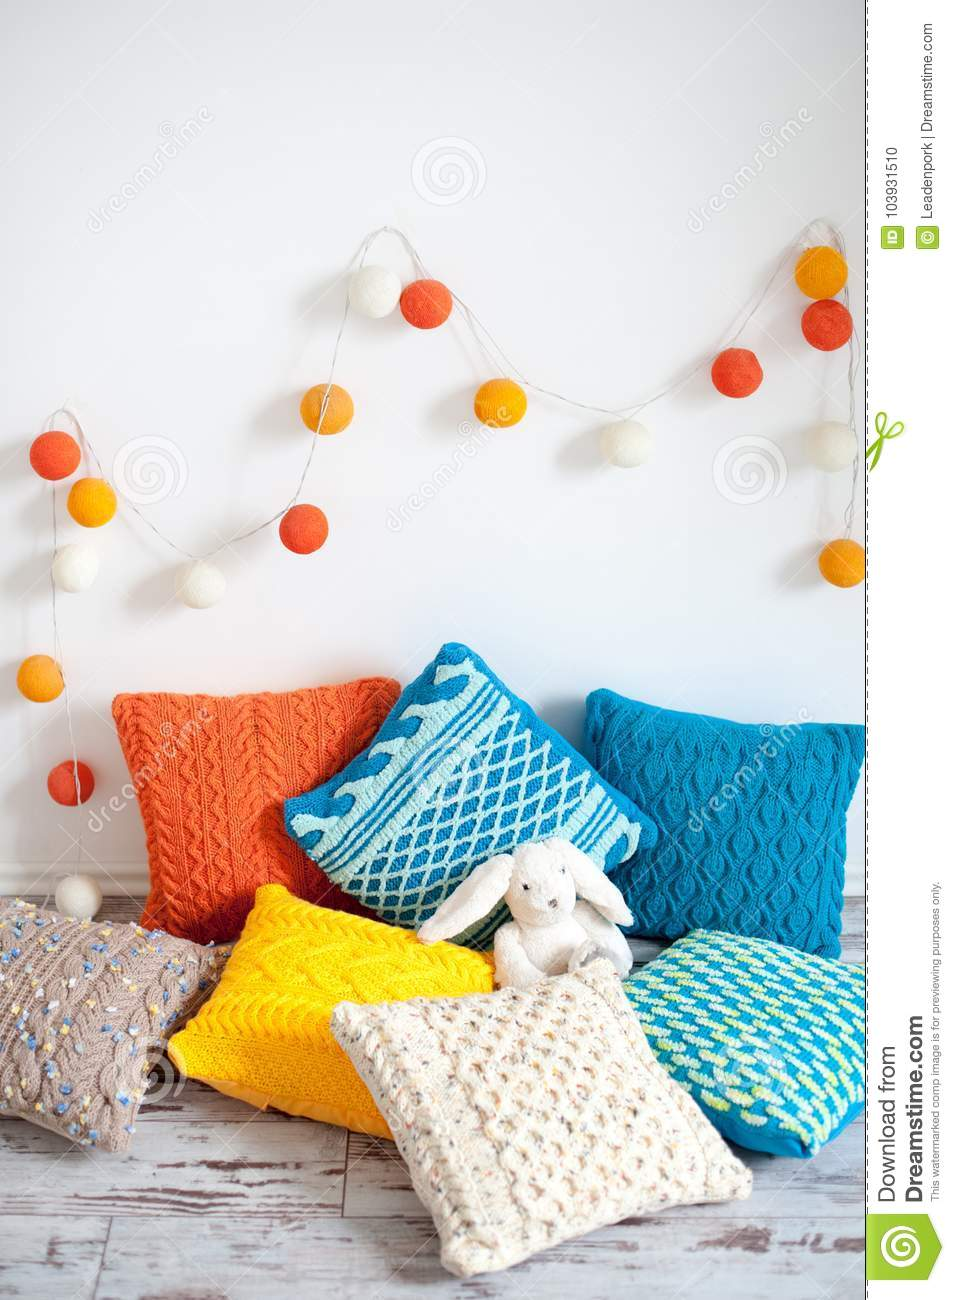 Bright Multicolored Knitted Cushions Stock Photo - Image of design ...